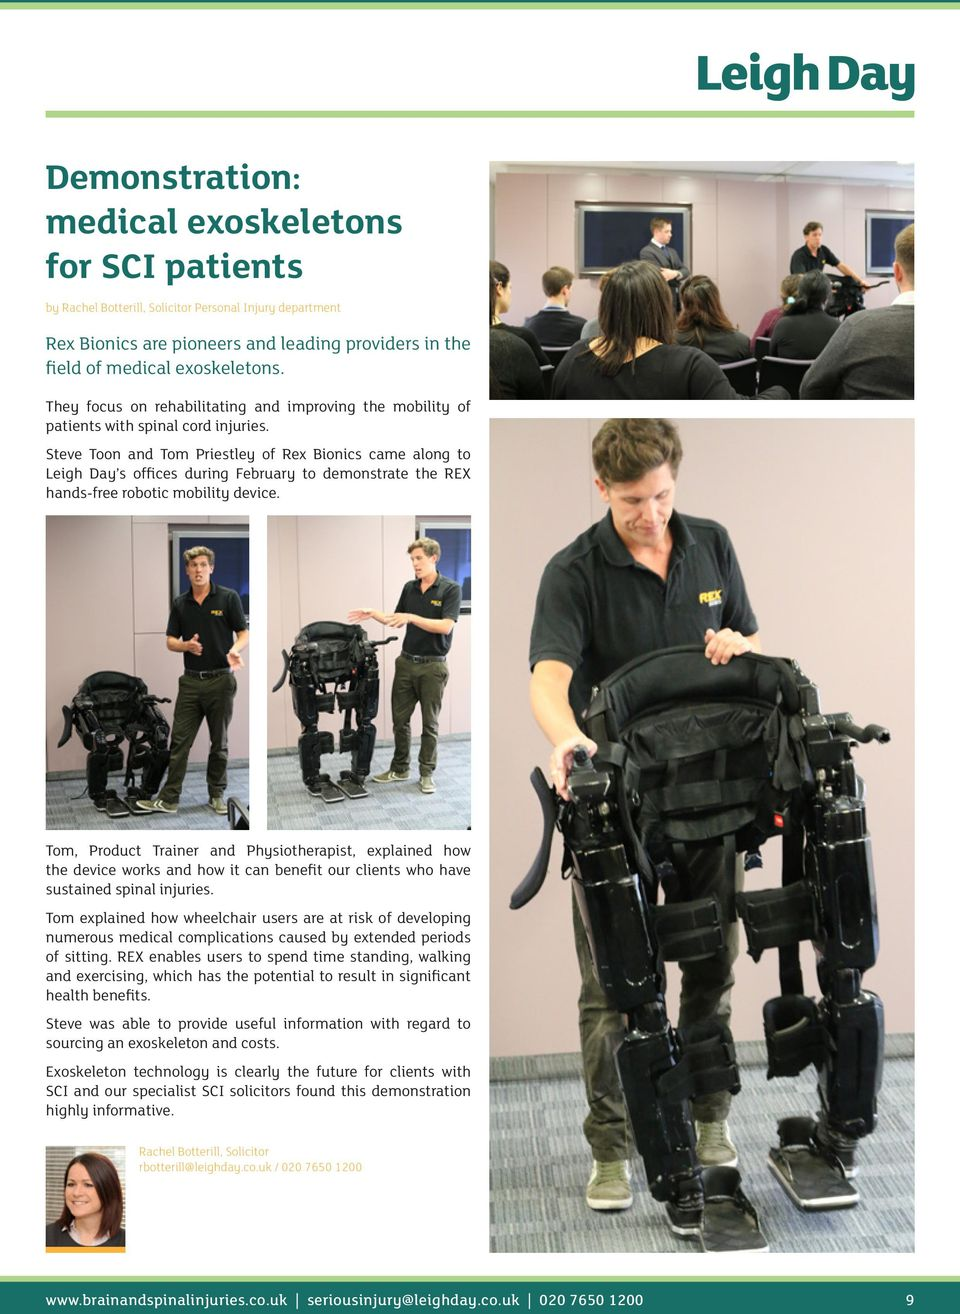 Steve Toon and Tom Priestley of Rex Bionics came along to Leigh Day s offices during February to demonstrate the REX hands-free robotic mobility device.